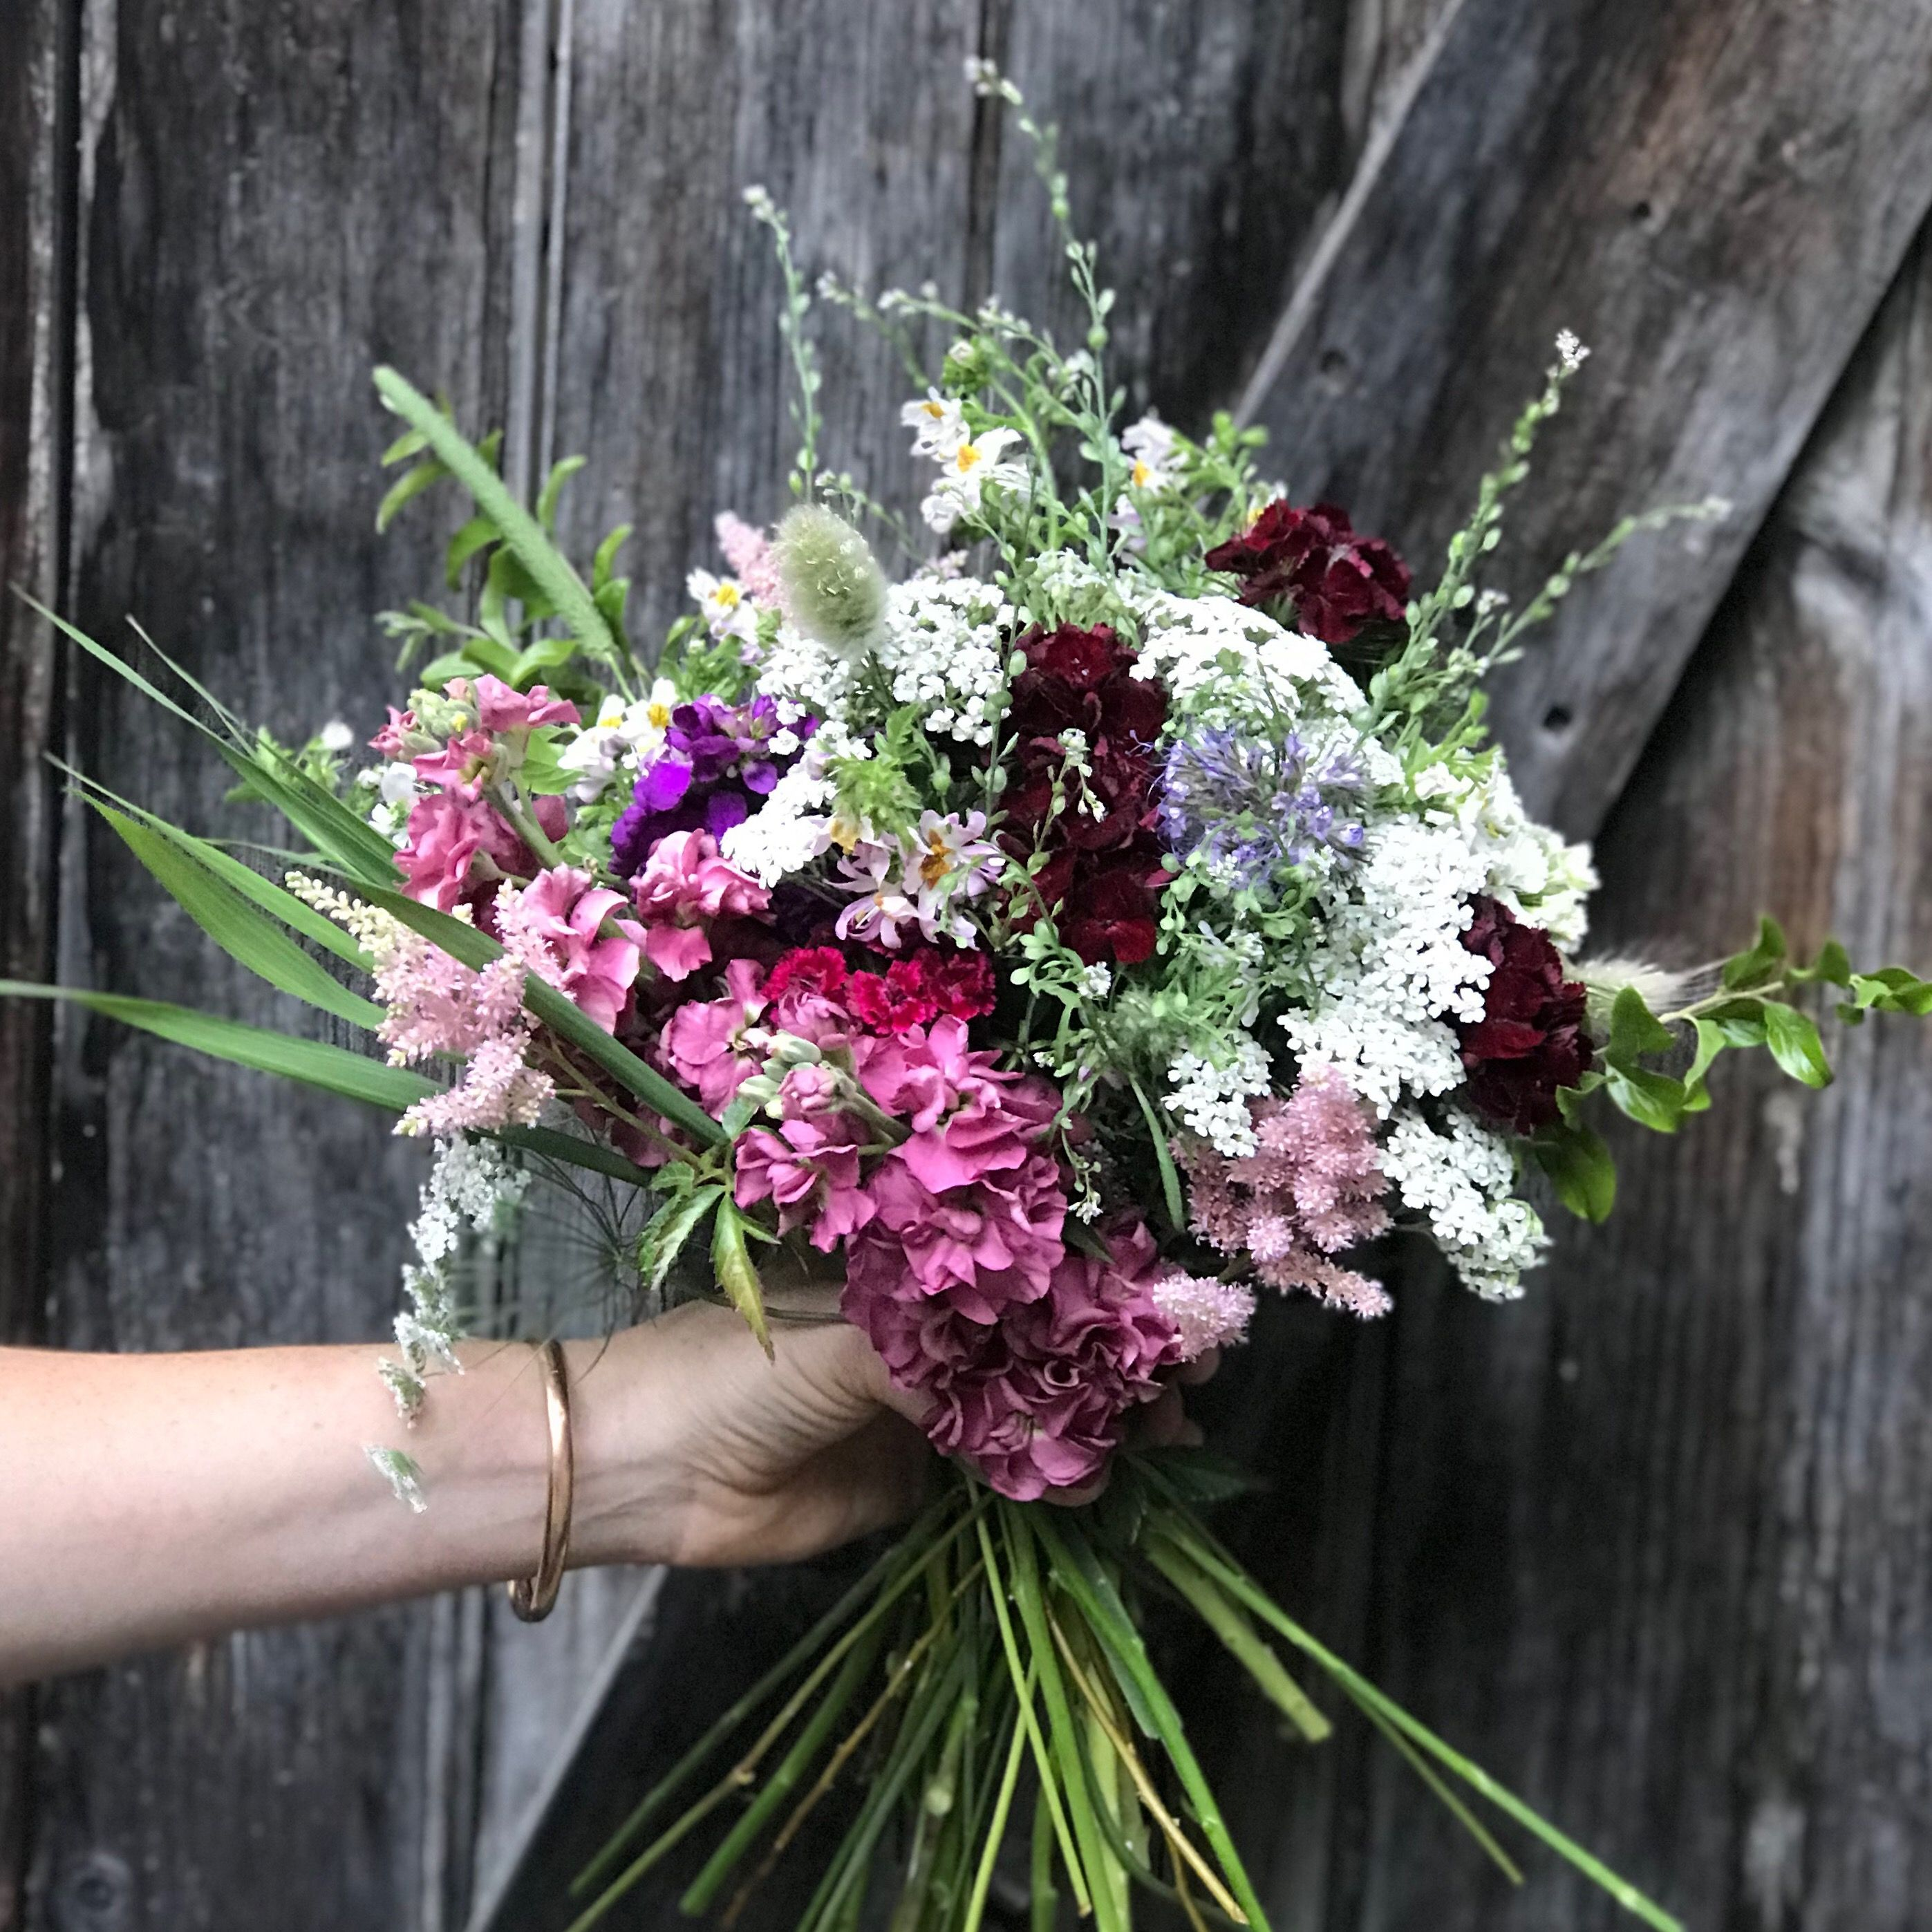 Early summer bouquet made fresh from our farm flowers in